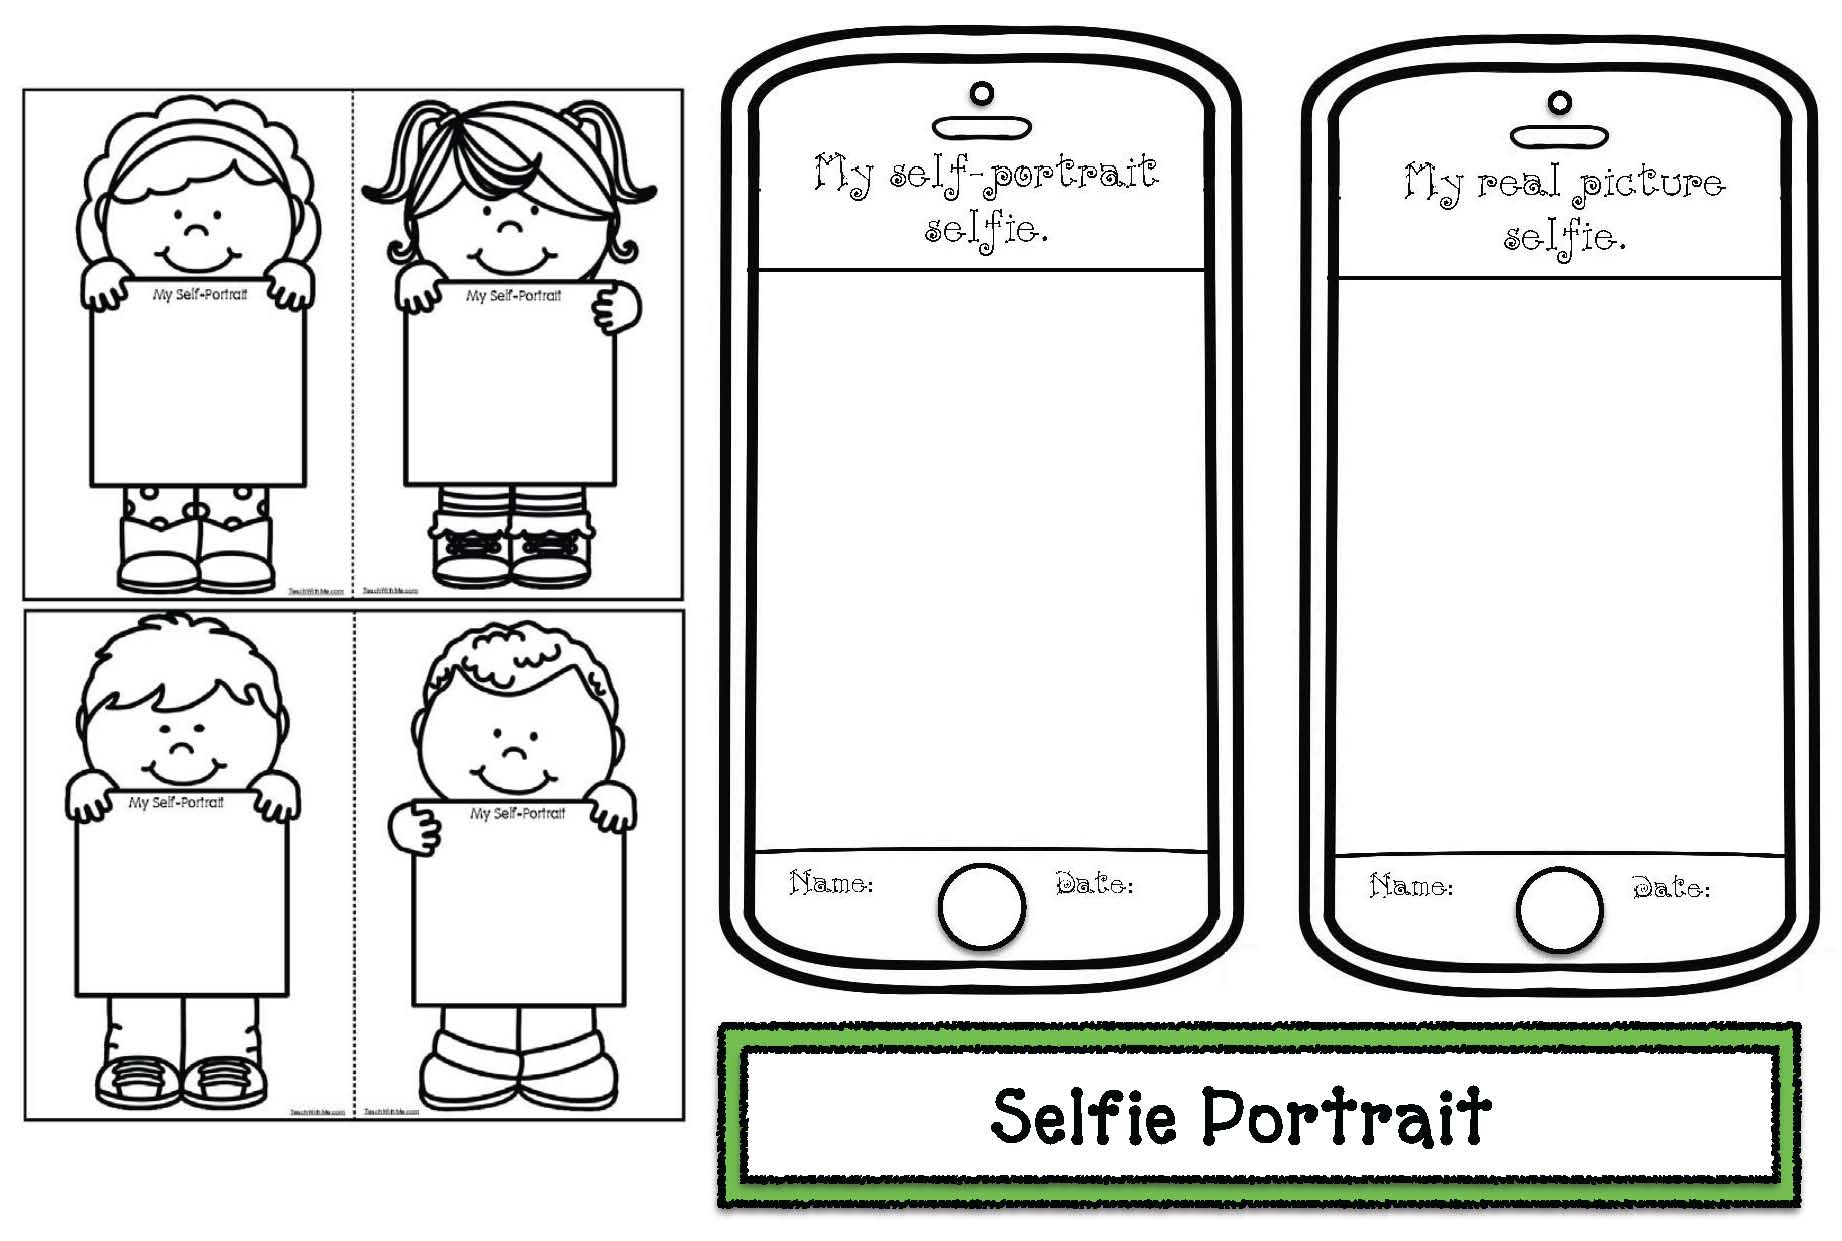 selfie portraits, back to school activities, back to school memory books, back to school writing prompts